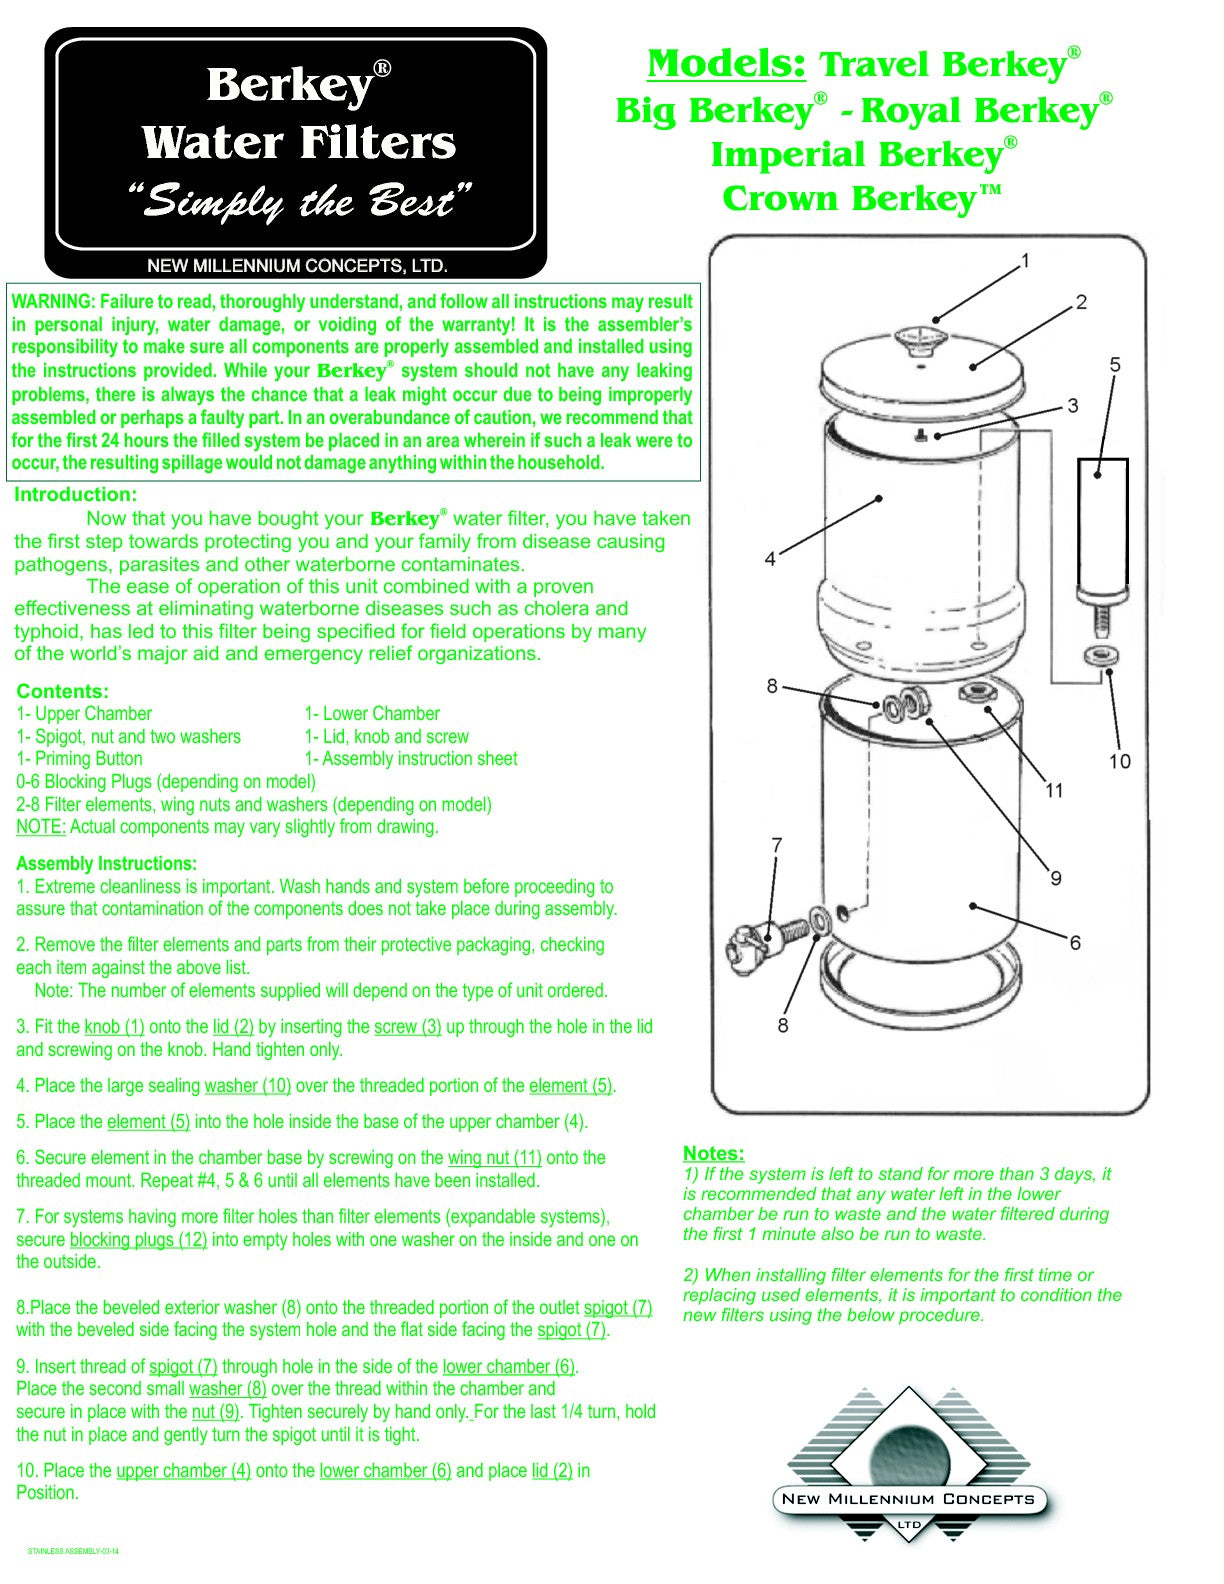 Stainless Steel Berkey Assembly Instructions With Ceramic Filters